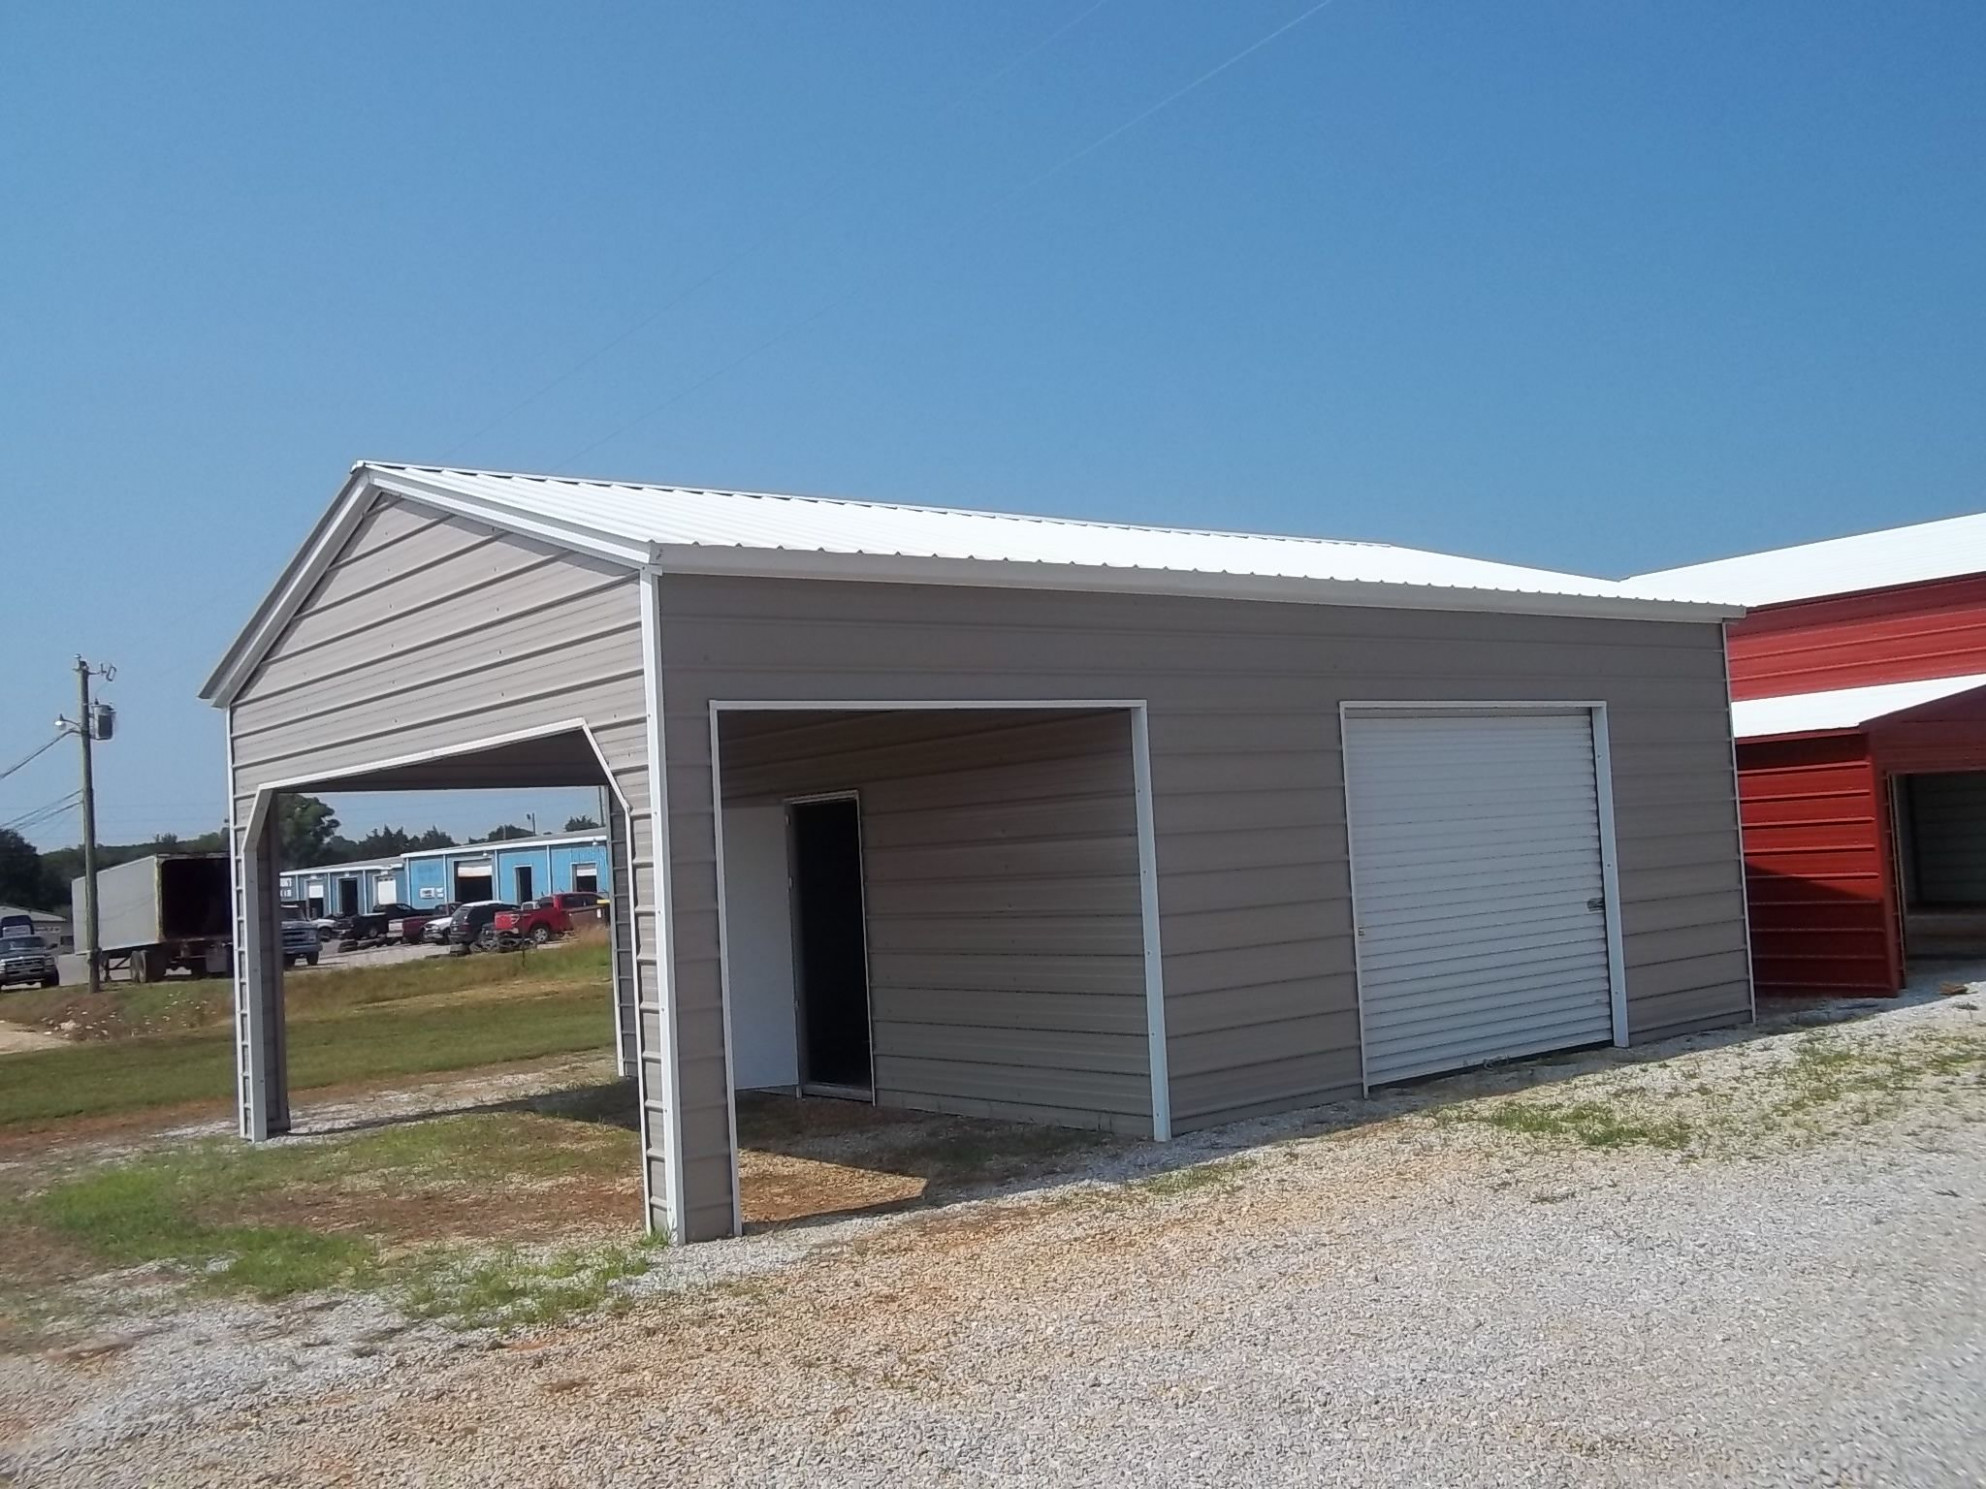 20 X 26 X 10 Combo Garage | Choice Metal Buildings Metal Carports With Garage Door